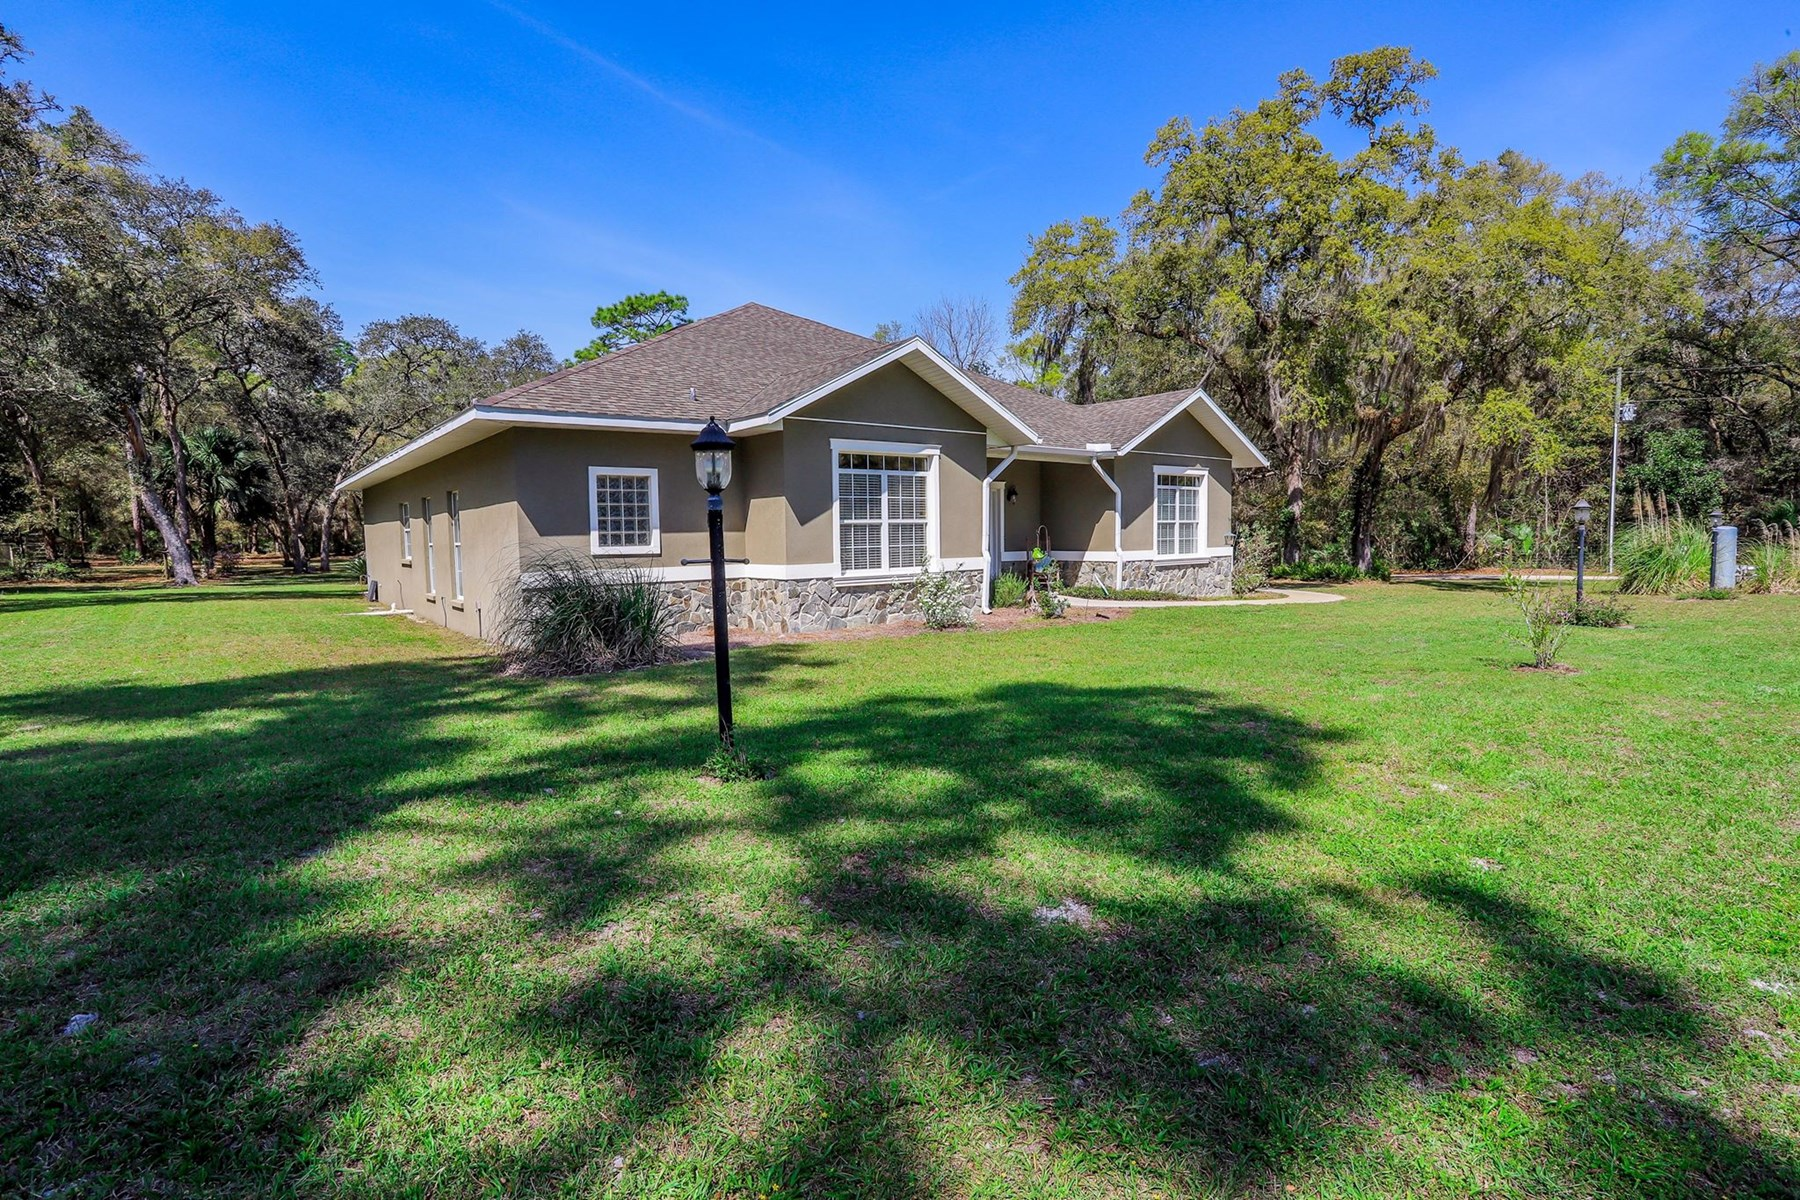 4BR HOME WITH POOL - Chiefland, Levy County, Florida